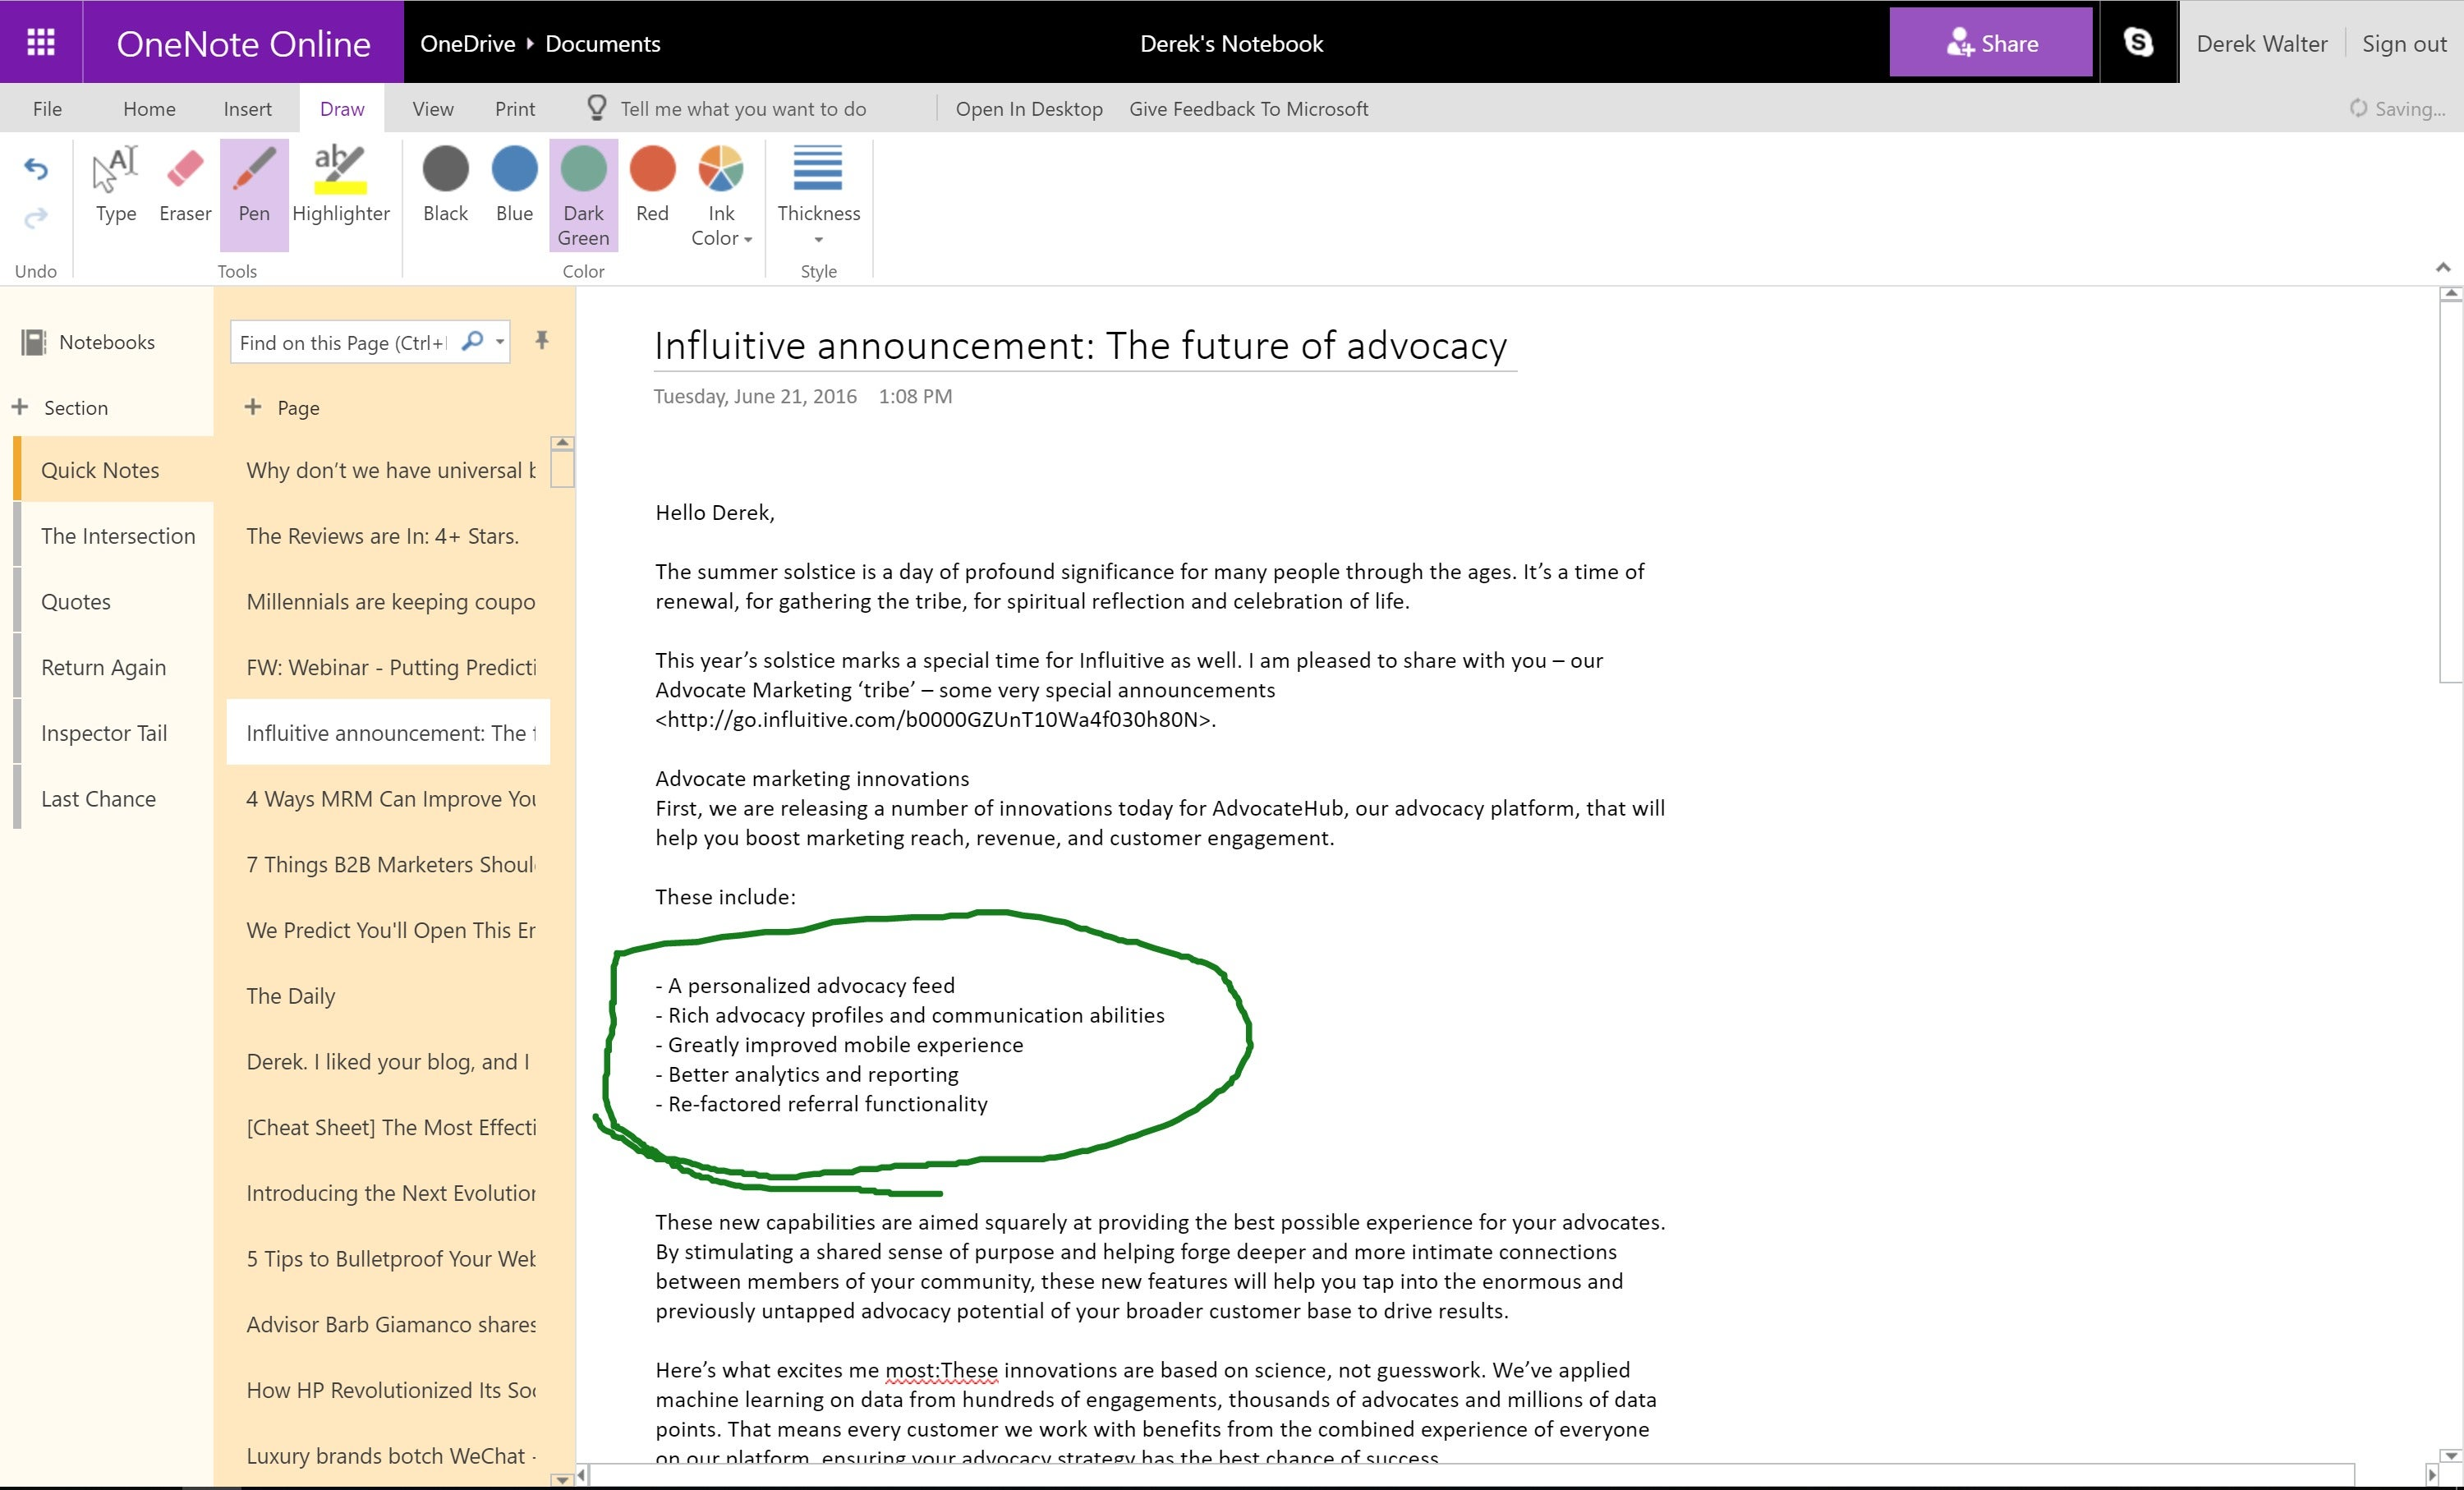 one note Onenote is a note taking app from microsoft that makes it easy to sync your ideas, sketches and notes across all your devices connect to your office 365 account with onedrive for business.